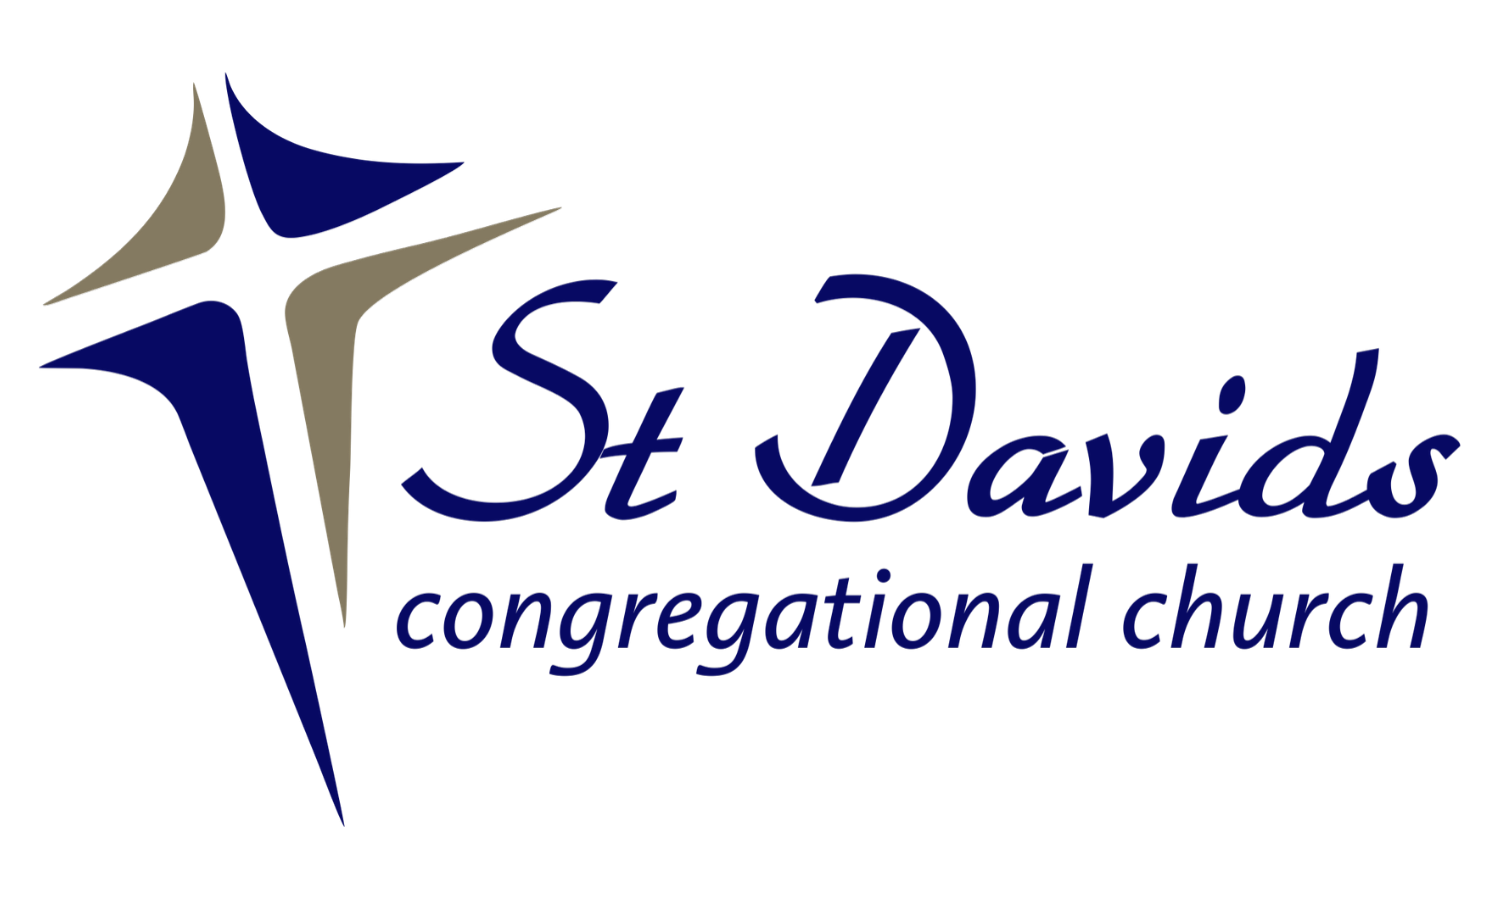 St Davids Congregational Church